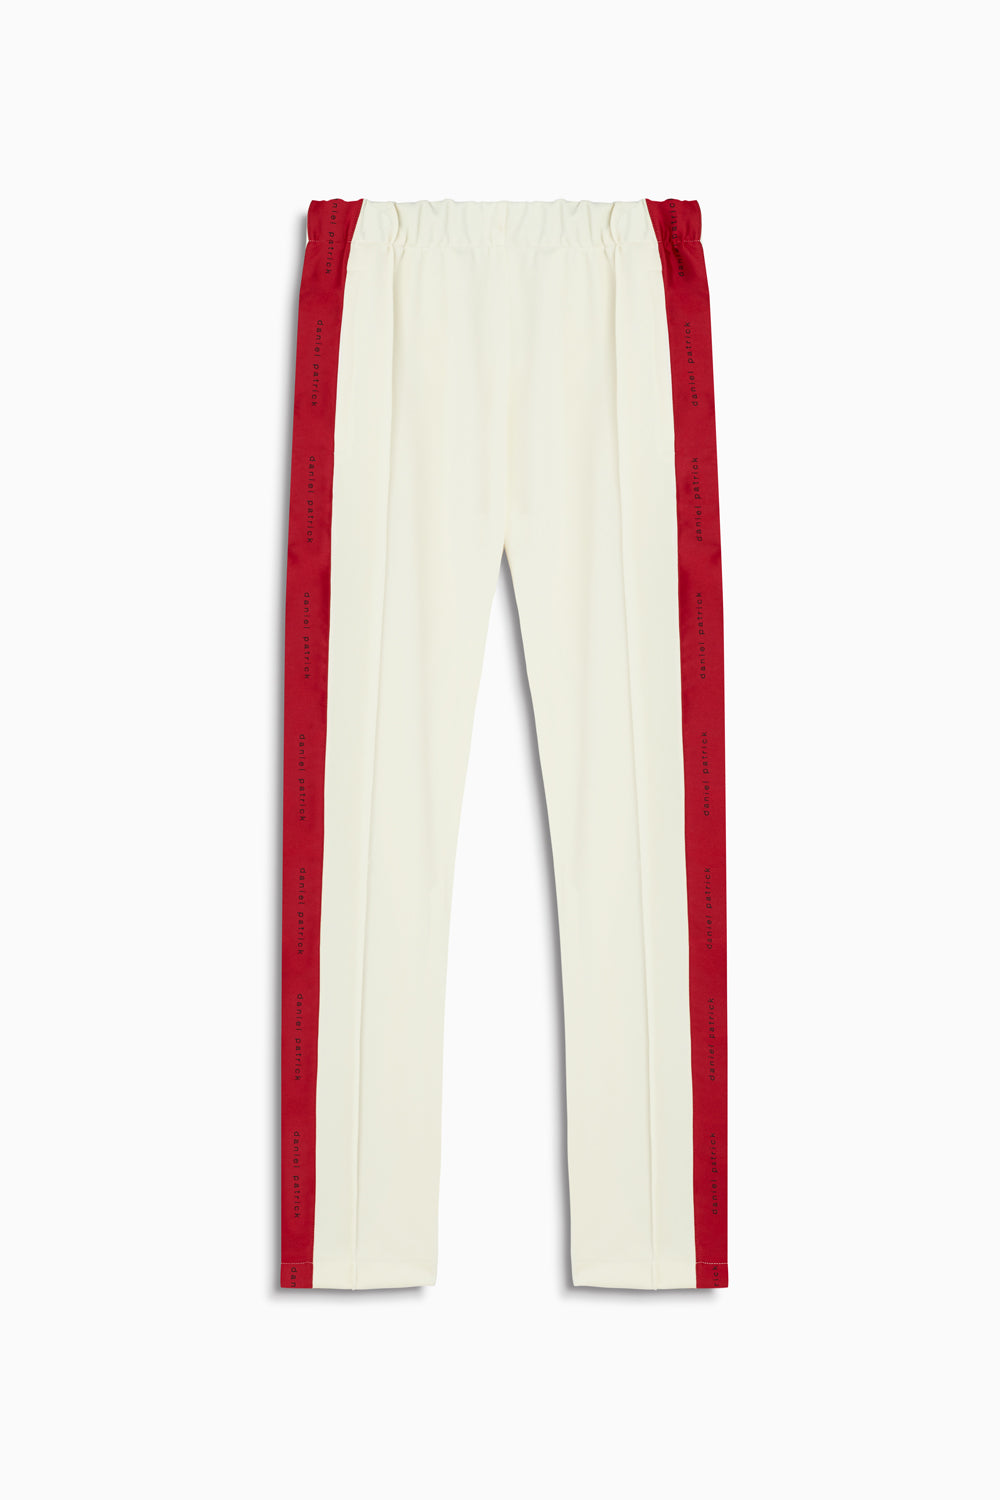 womens heroine track pant in ivory/red by daniel patrick